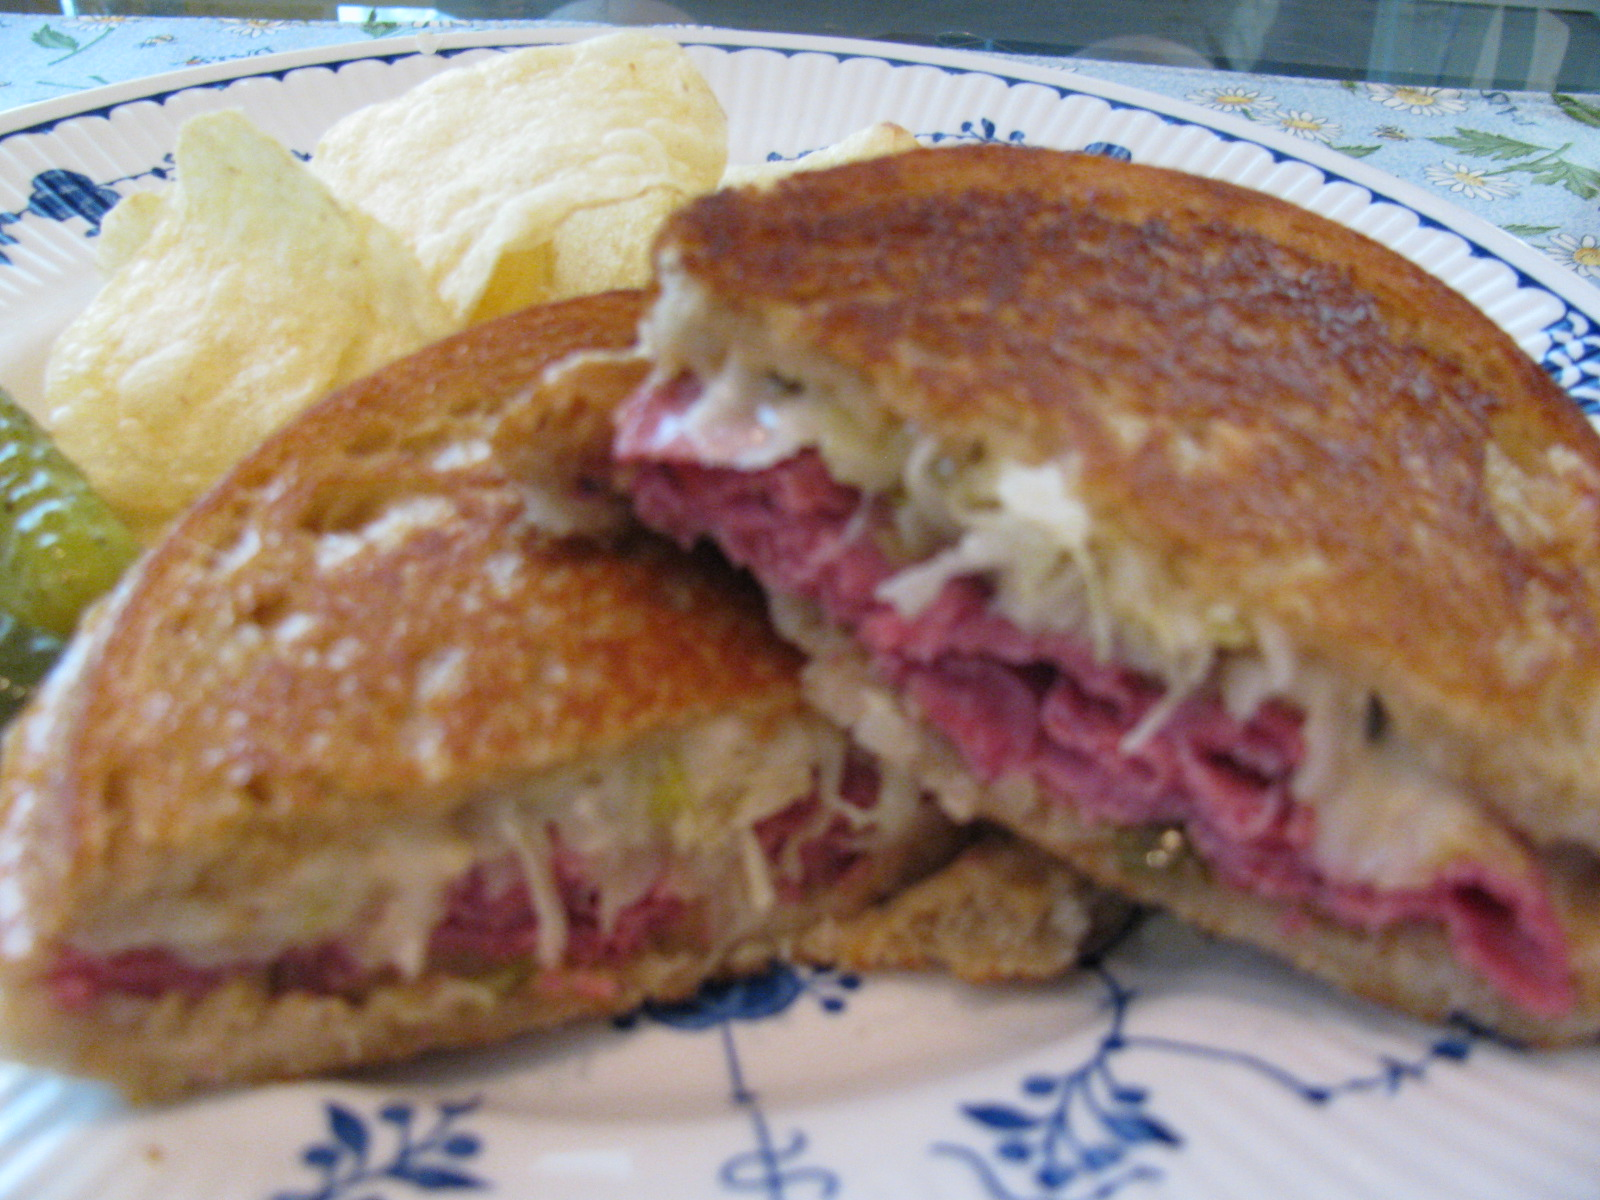 Rita's Recipes: The Reuben Sandwich with Homemade 1000 Island Dressing